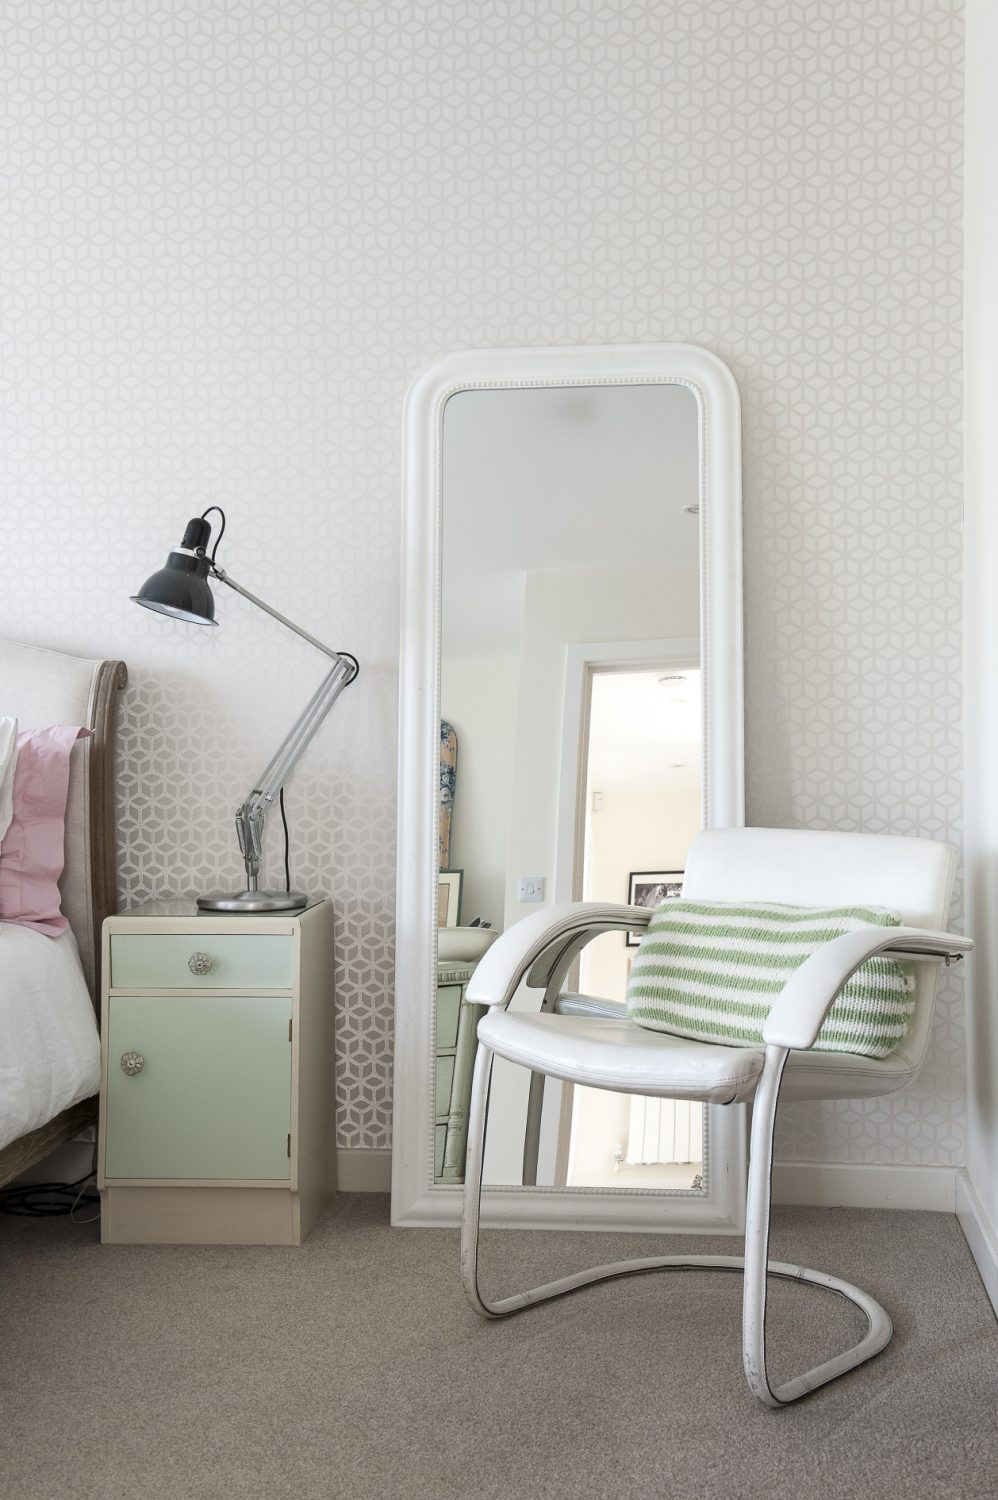 Beside the bed stands an elegant, 60s steel-framed, white leather chair